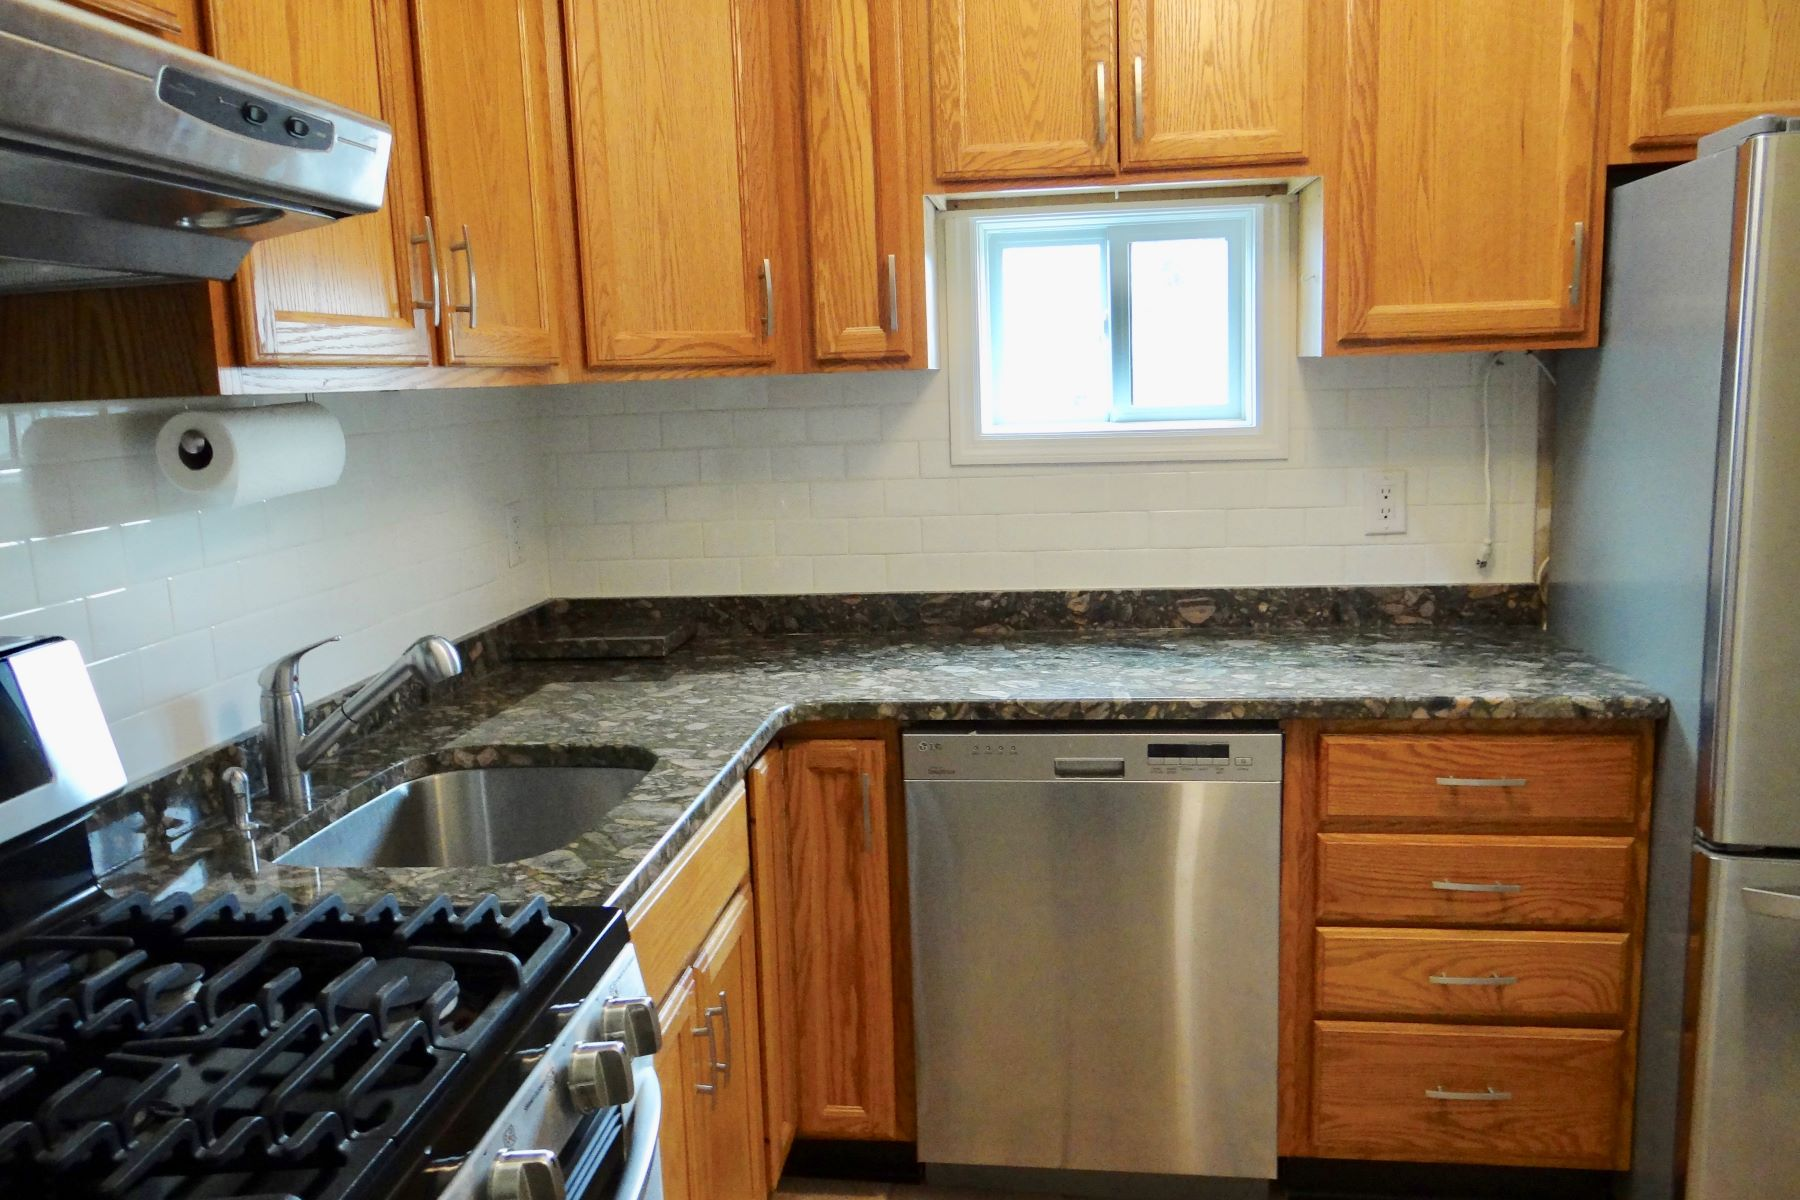 شقة بعمارة للـ Rent في Renovated Upper Unit 127 Olcott Way 127, Ridgefield, Connecticut, 06877 United States